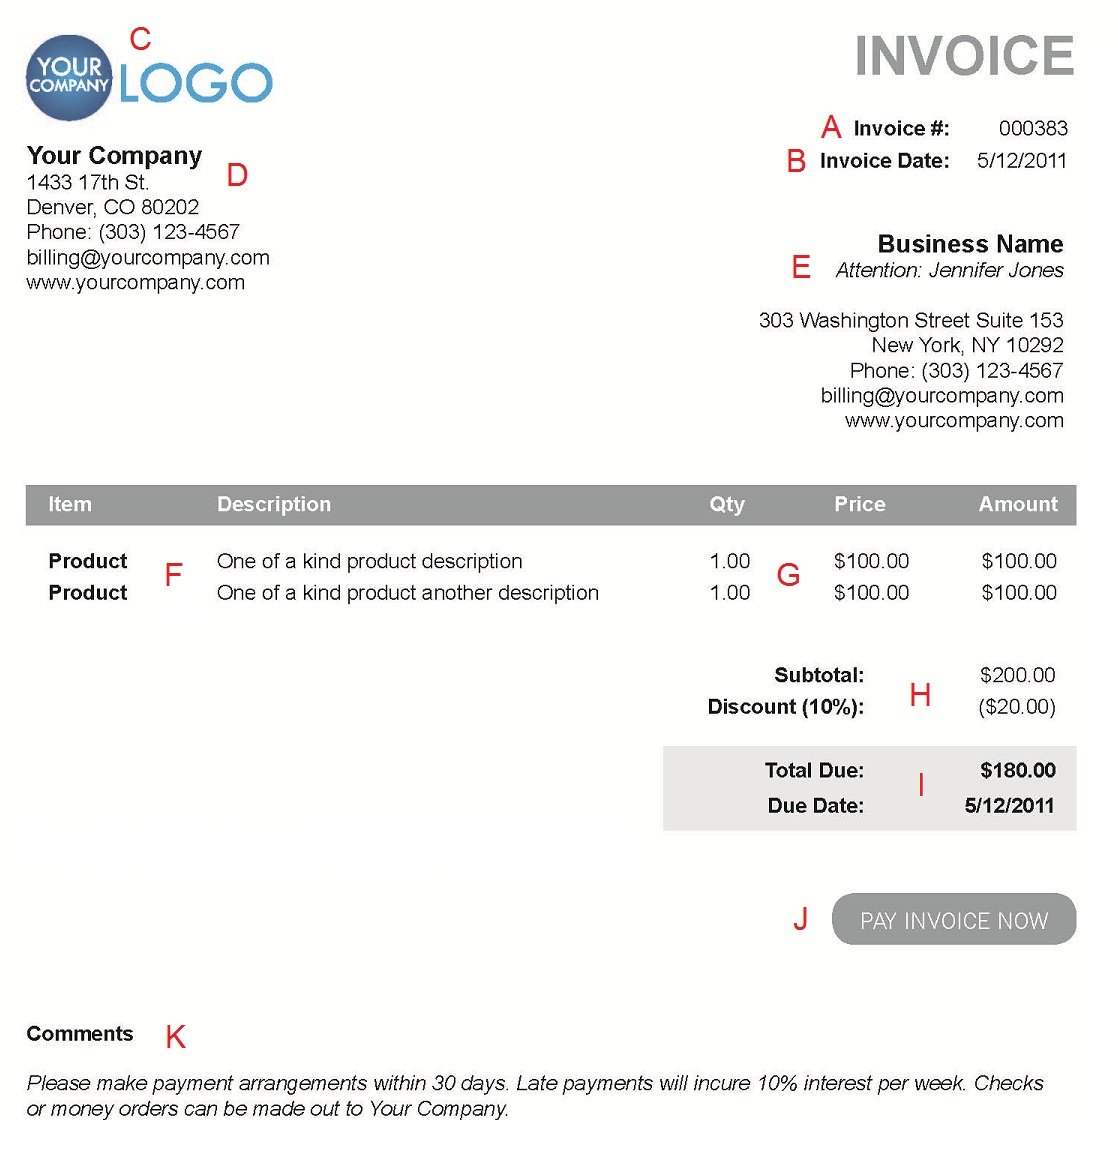 Pigbrotherus  Fascinating The  Different Sections Of An Electronic Payment Invoice With Fetching A  With Enchanting Fedex International Invoice Also What Is Invoice Price On A New Car In Addition Create An Invoice Form And Invoice Fob As Well As Free Microsoft Invoice Template Additionally Honda Accord  Invoice Price From Paysimplecom With Pigbrotherus  Fetching The  Different Sections Of An Electronic Payment Invoice With Enchanting A  And Fascinating Fedex International Invoice Also What Is Invoice Price On A New Car In Addition Create An Invoice Form From Paysimplecom